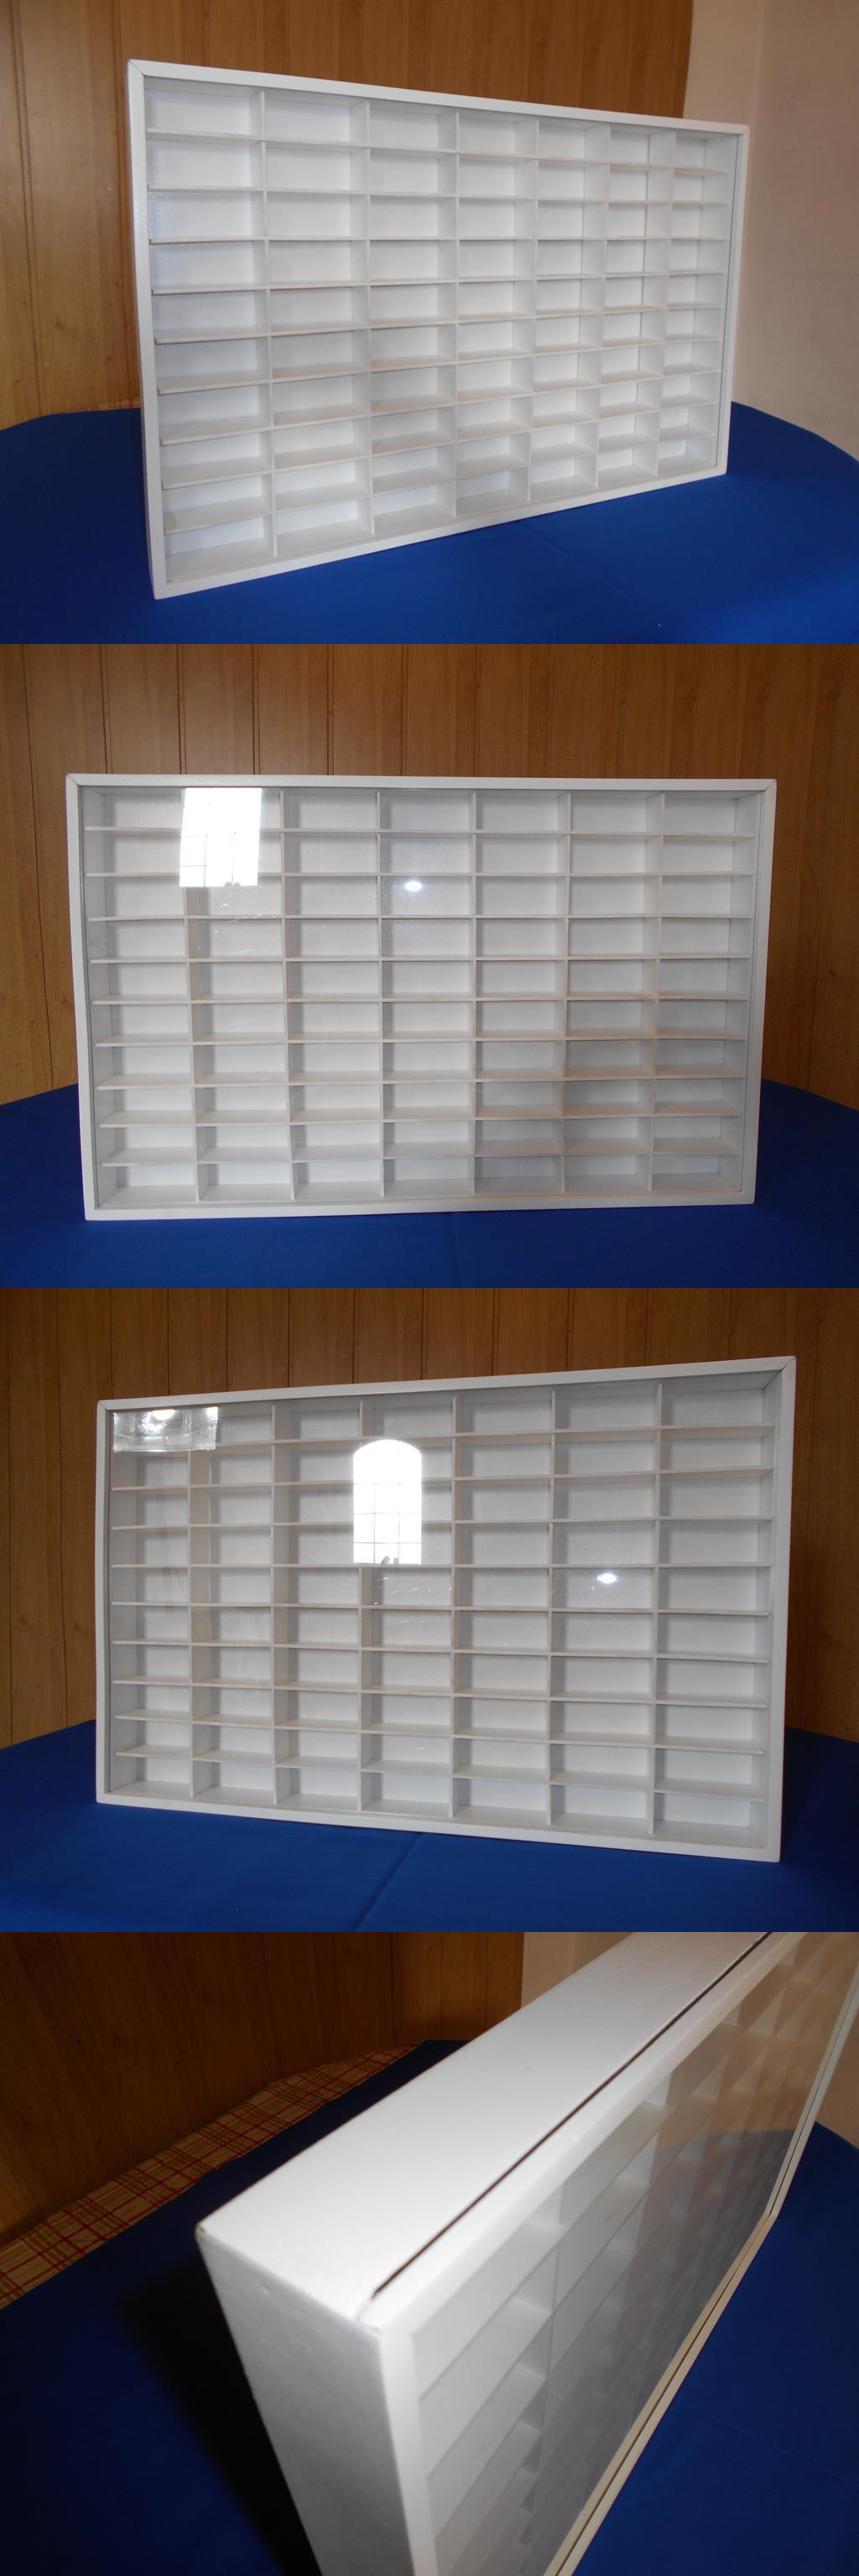 Display Cases and Stands 171135: Showcase, Wall Display Case Cabinet For 1  64 Scale